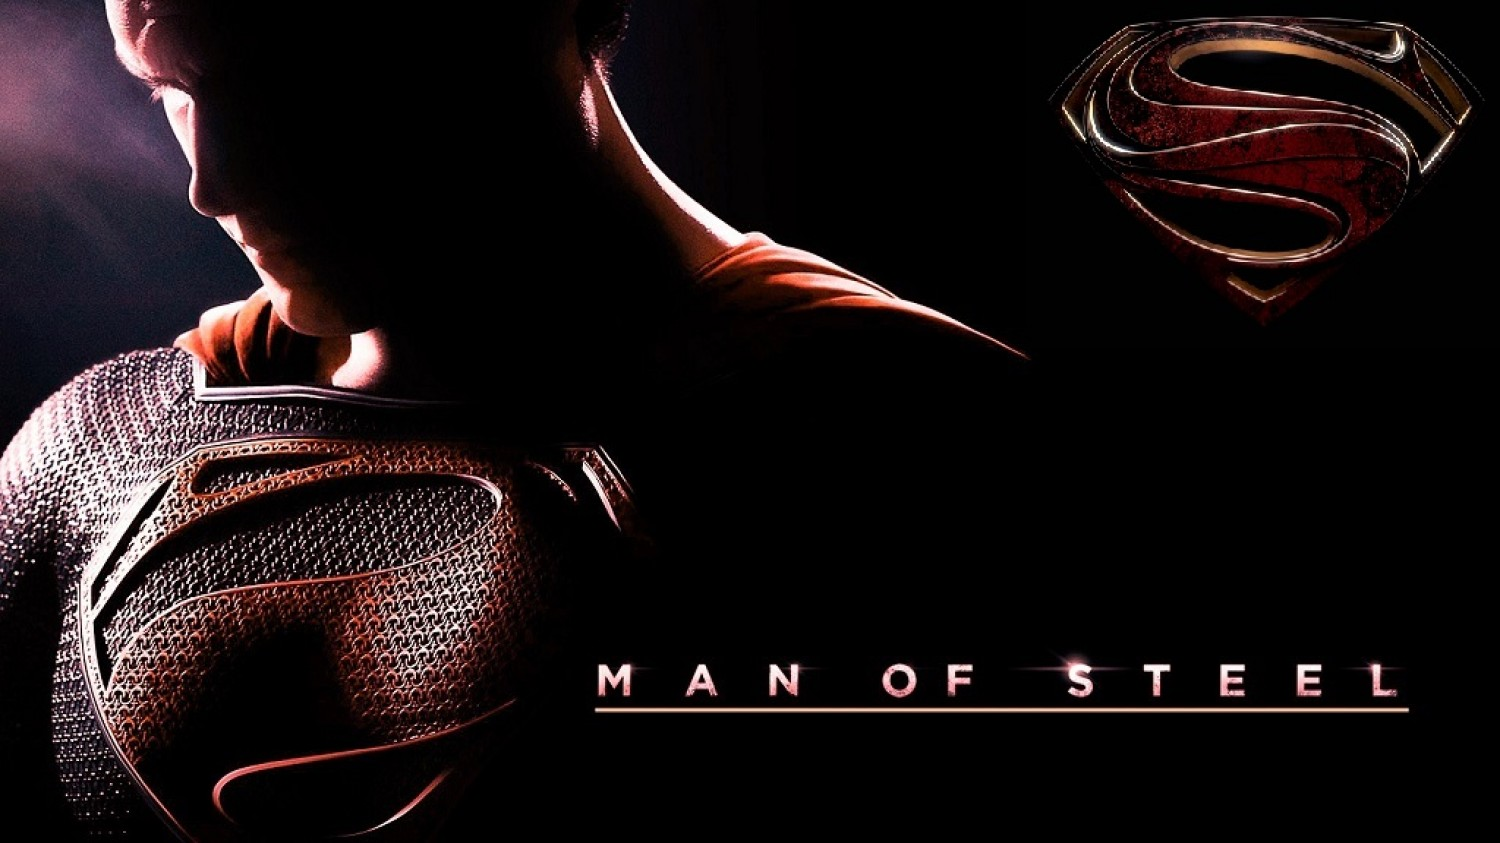 Man of Steel (2013) Director by Zack Snyder - Movie Review